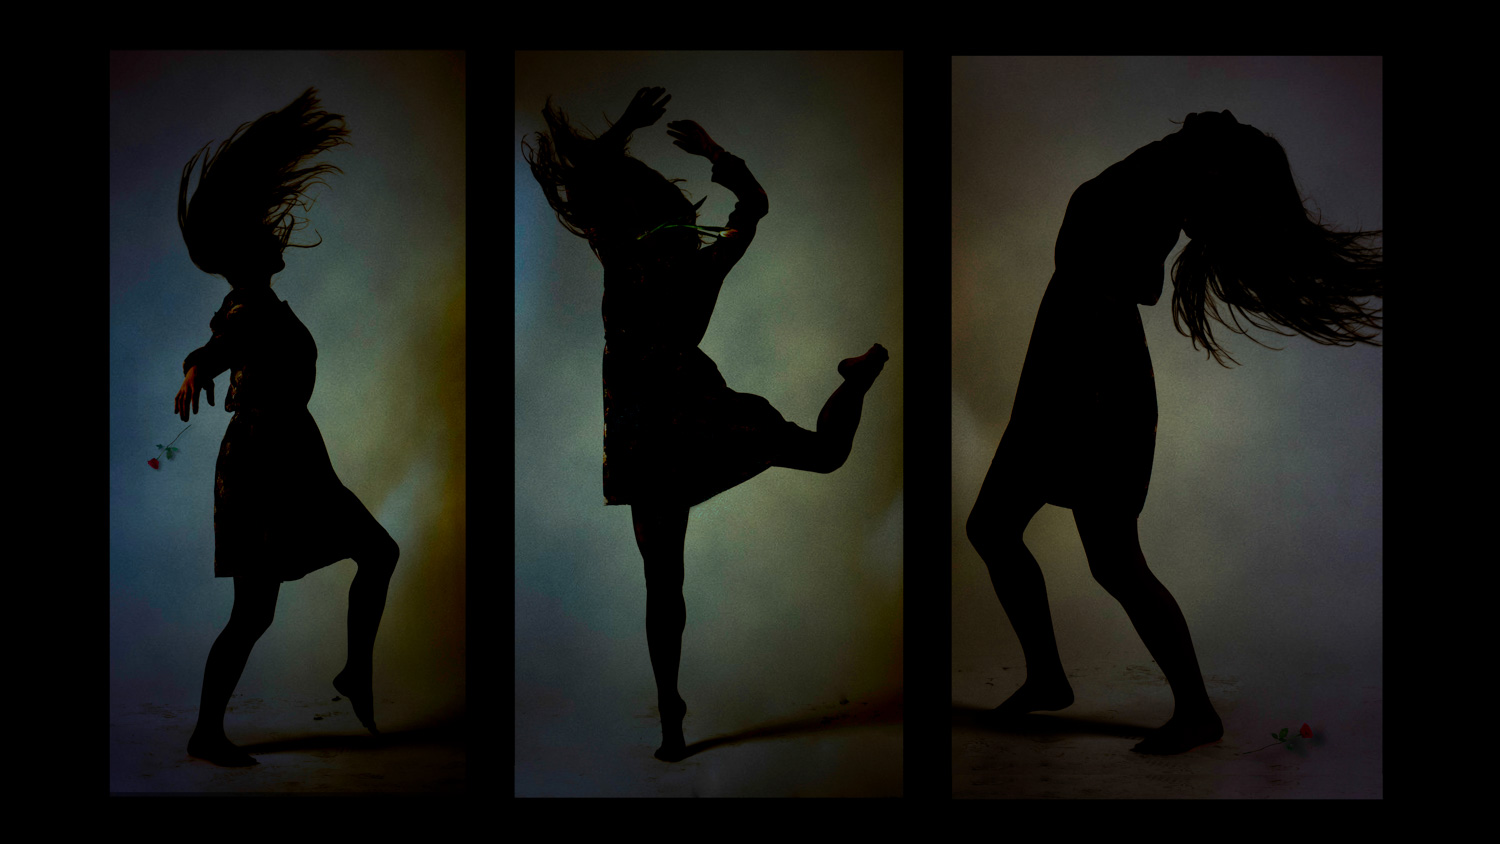 Dance your way to freedom